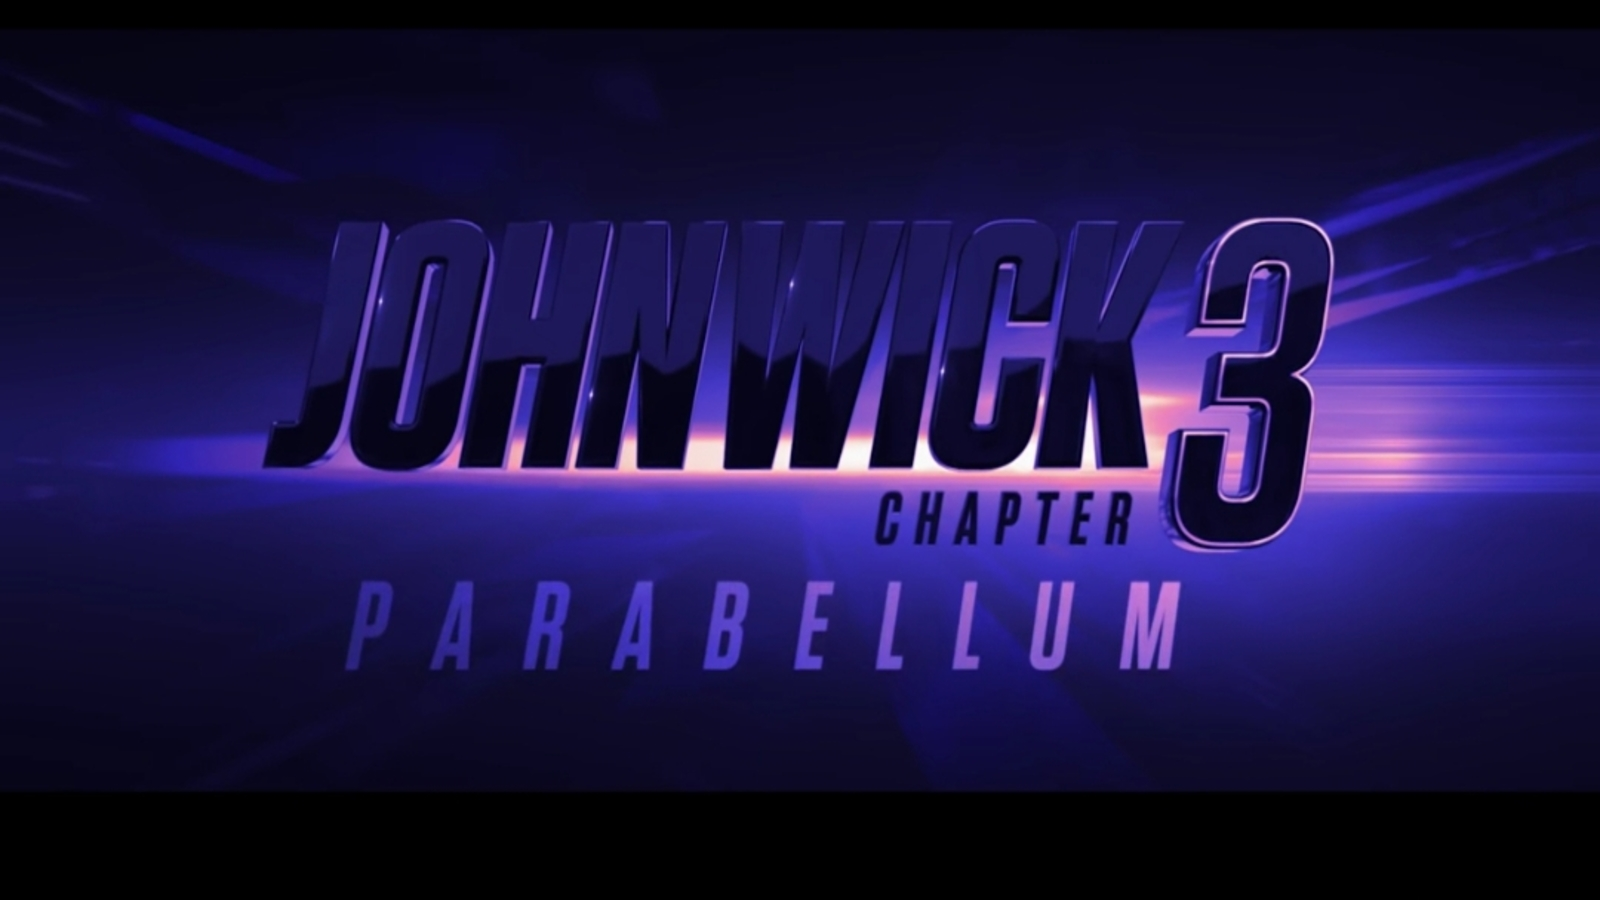 Movie Trailer for John Wick Chapter 3: Parabellum